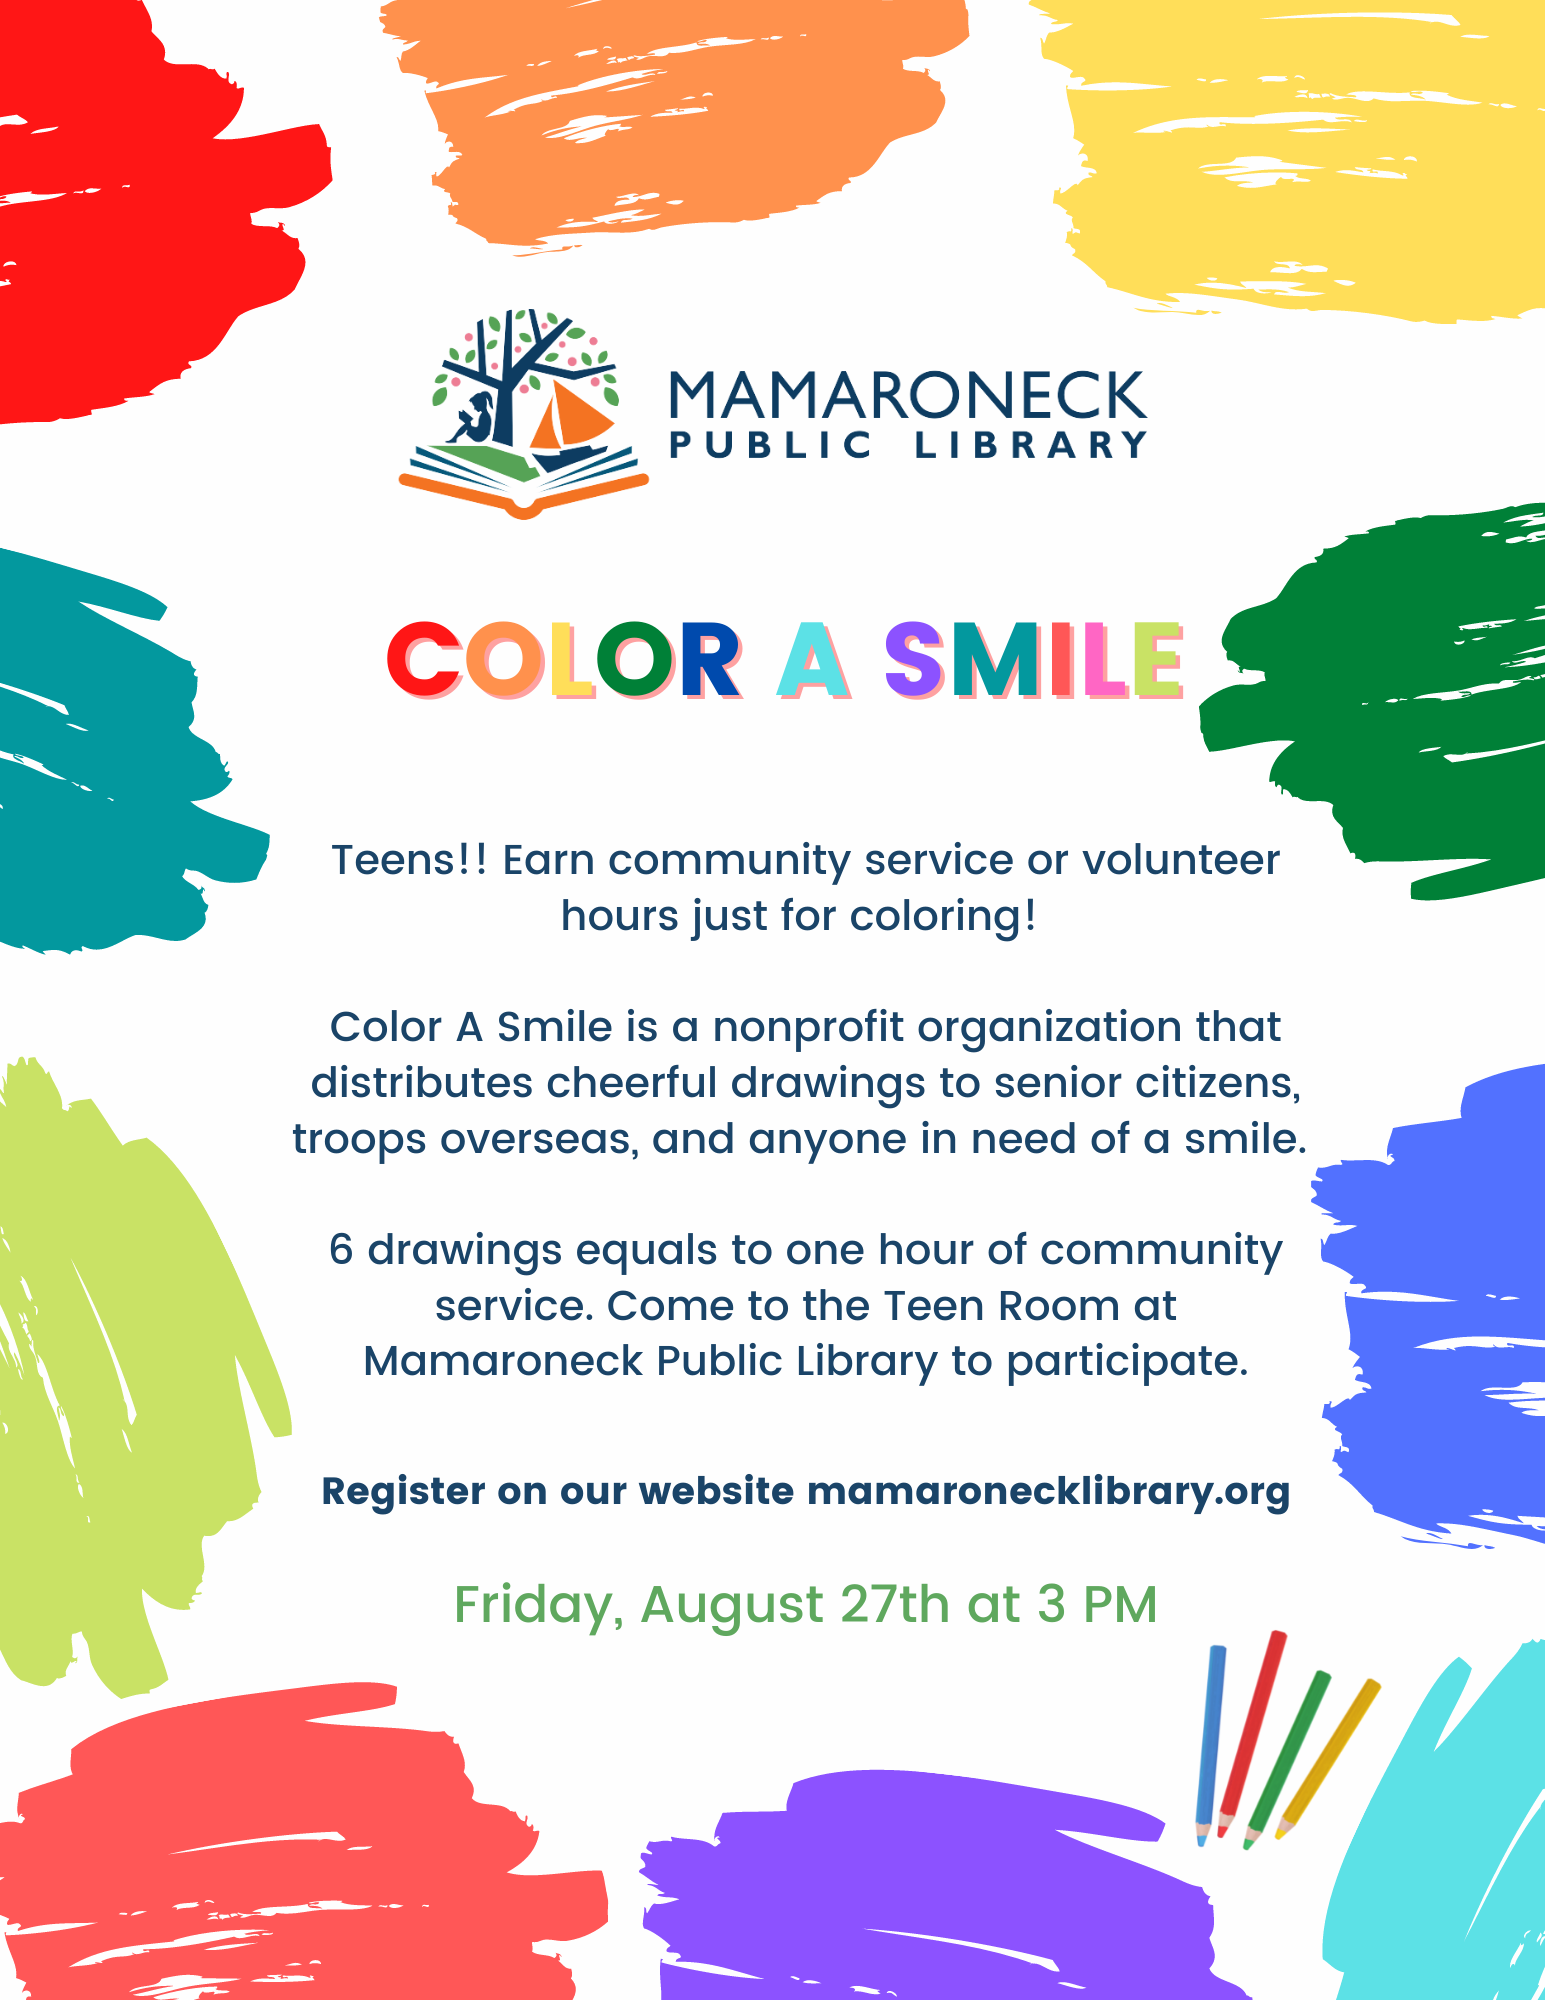 Teen Program: Color a Smile to earn community hours